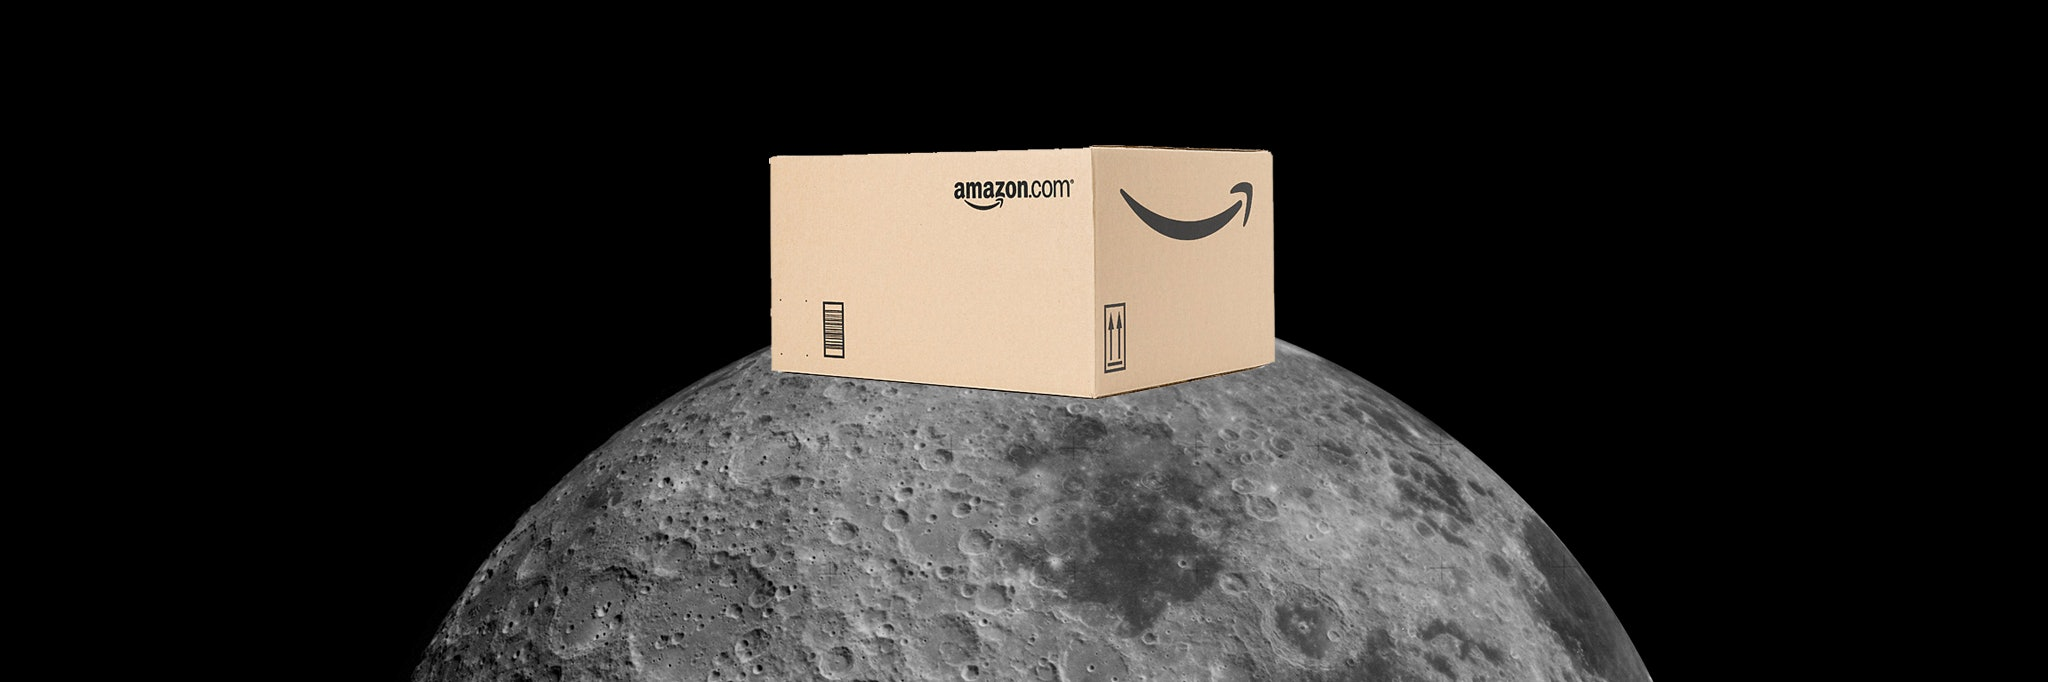 Blue Origin run by Jeff Bezos and Amazon have a plan to deliver packages to the moon for future moon colonies.